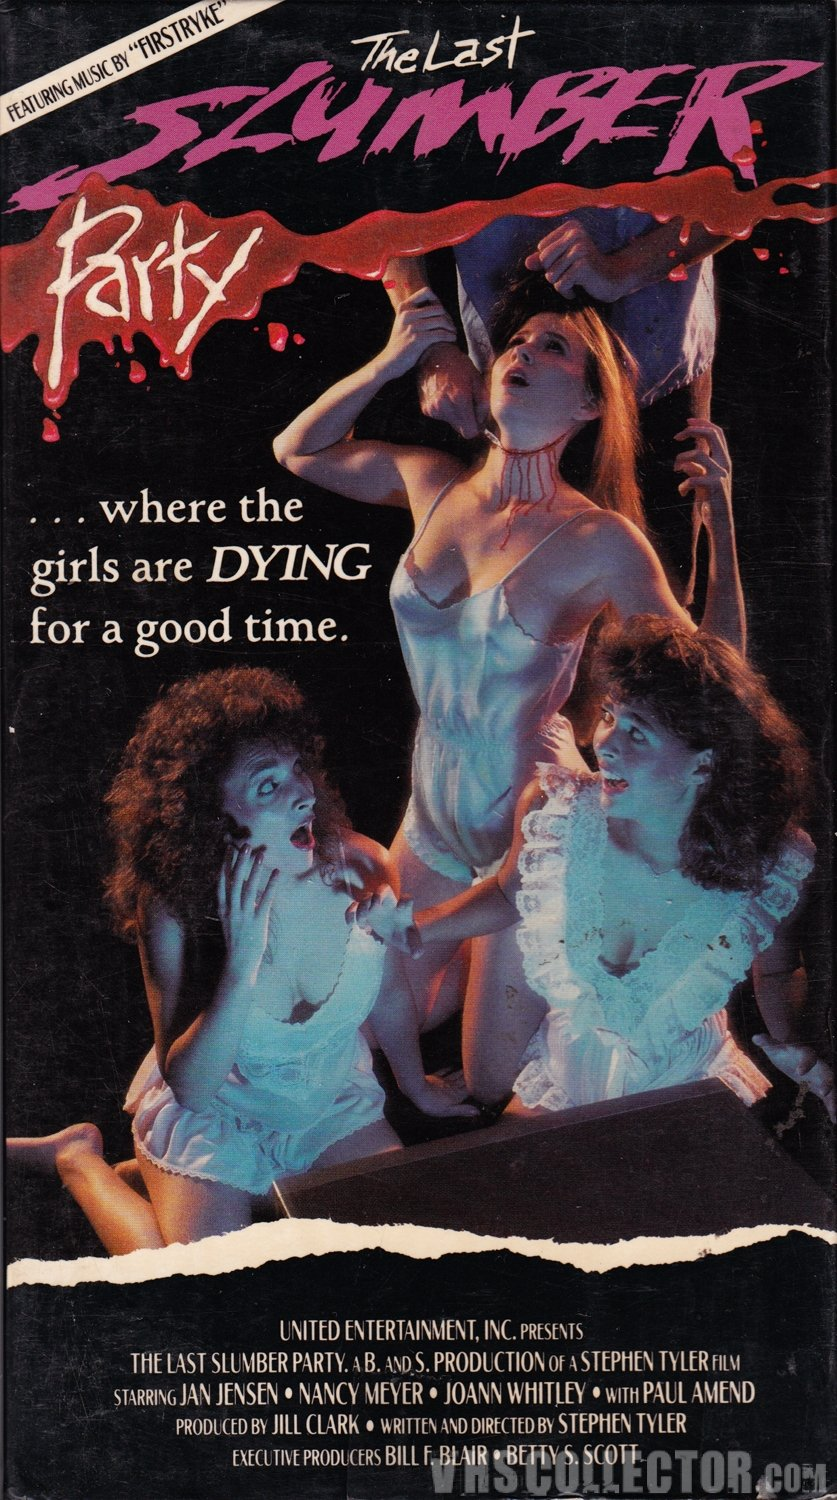 The Last Slumber Party [VHS] Paul Amend